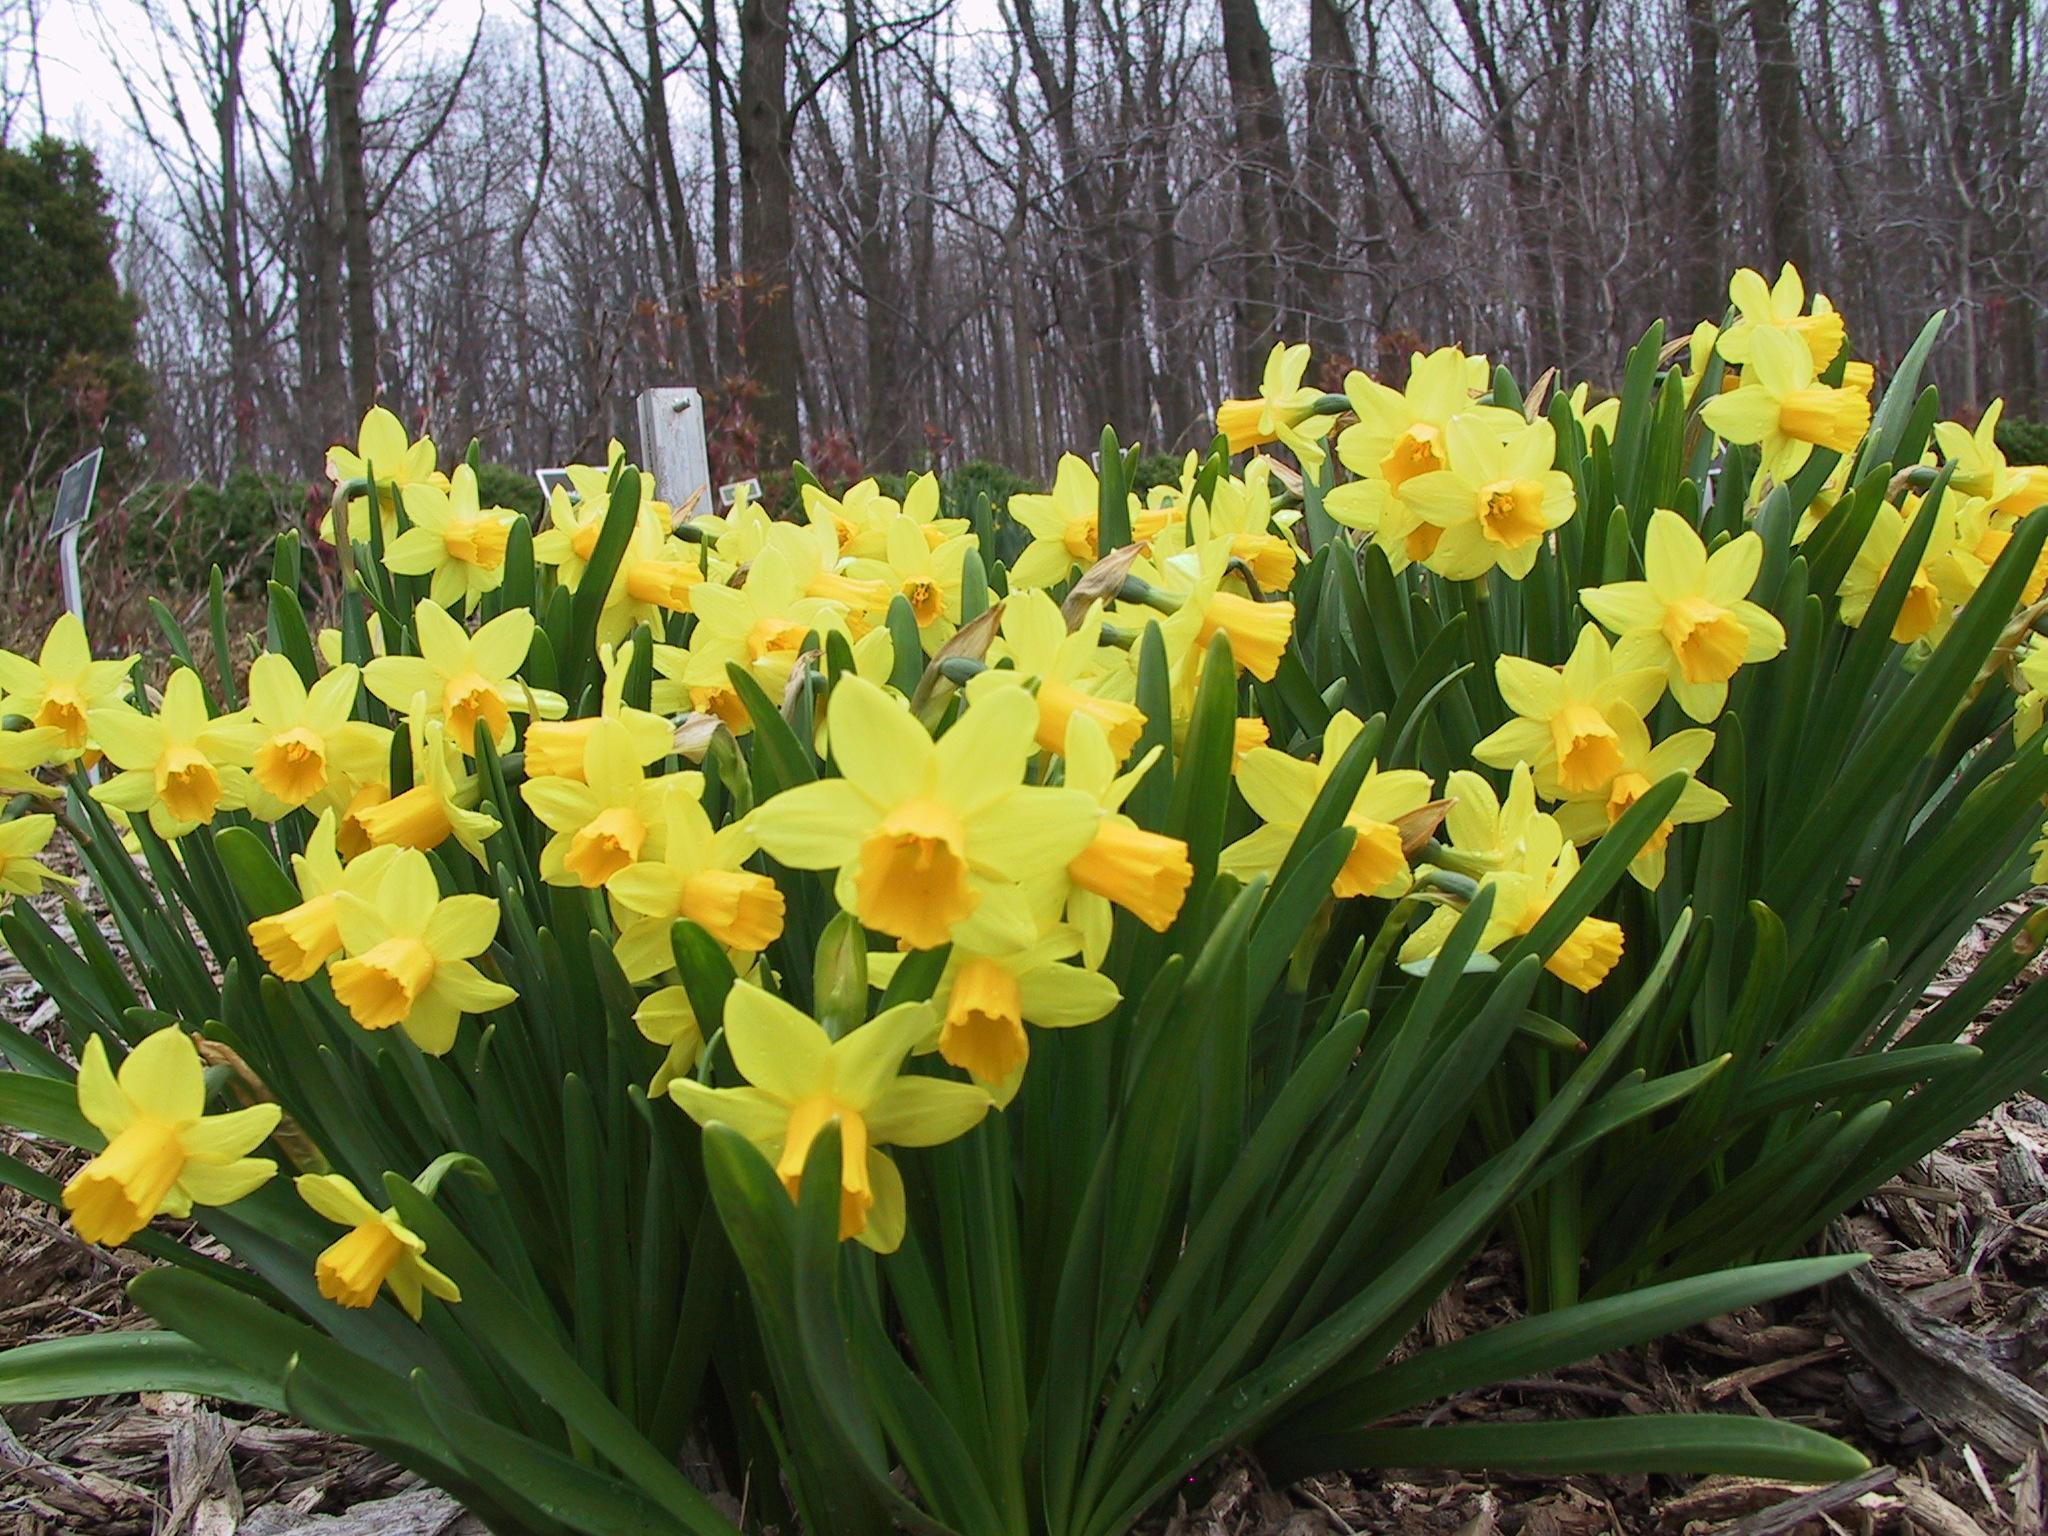 http://www.stephenmorrisauthor.com/wp-content/uploads/2013/03/Daffodil.jpg